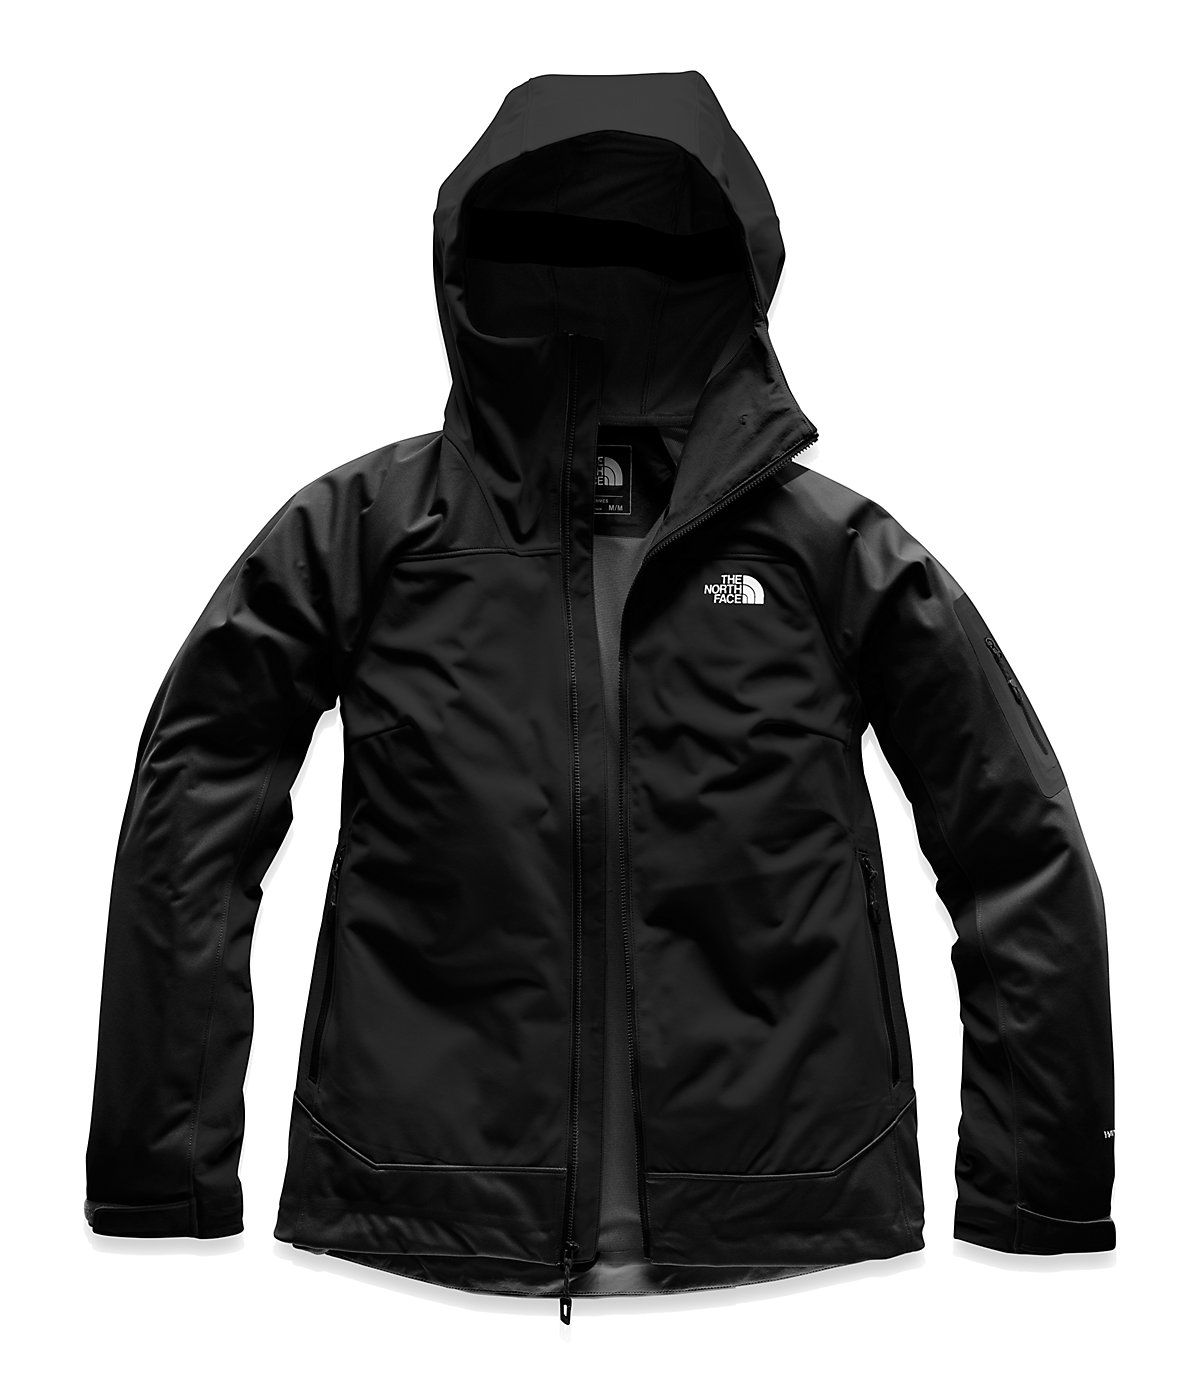 16964e0d9 Women's impendor soft shell jacket in 2019 | Products | Jackets ...